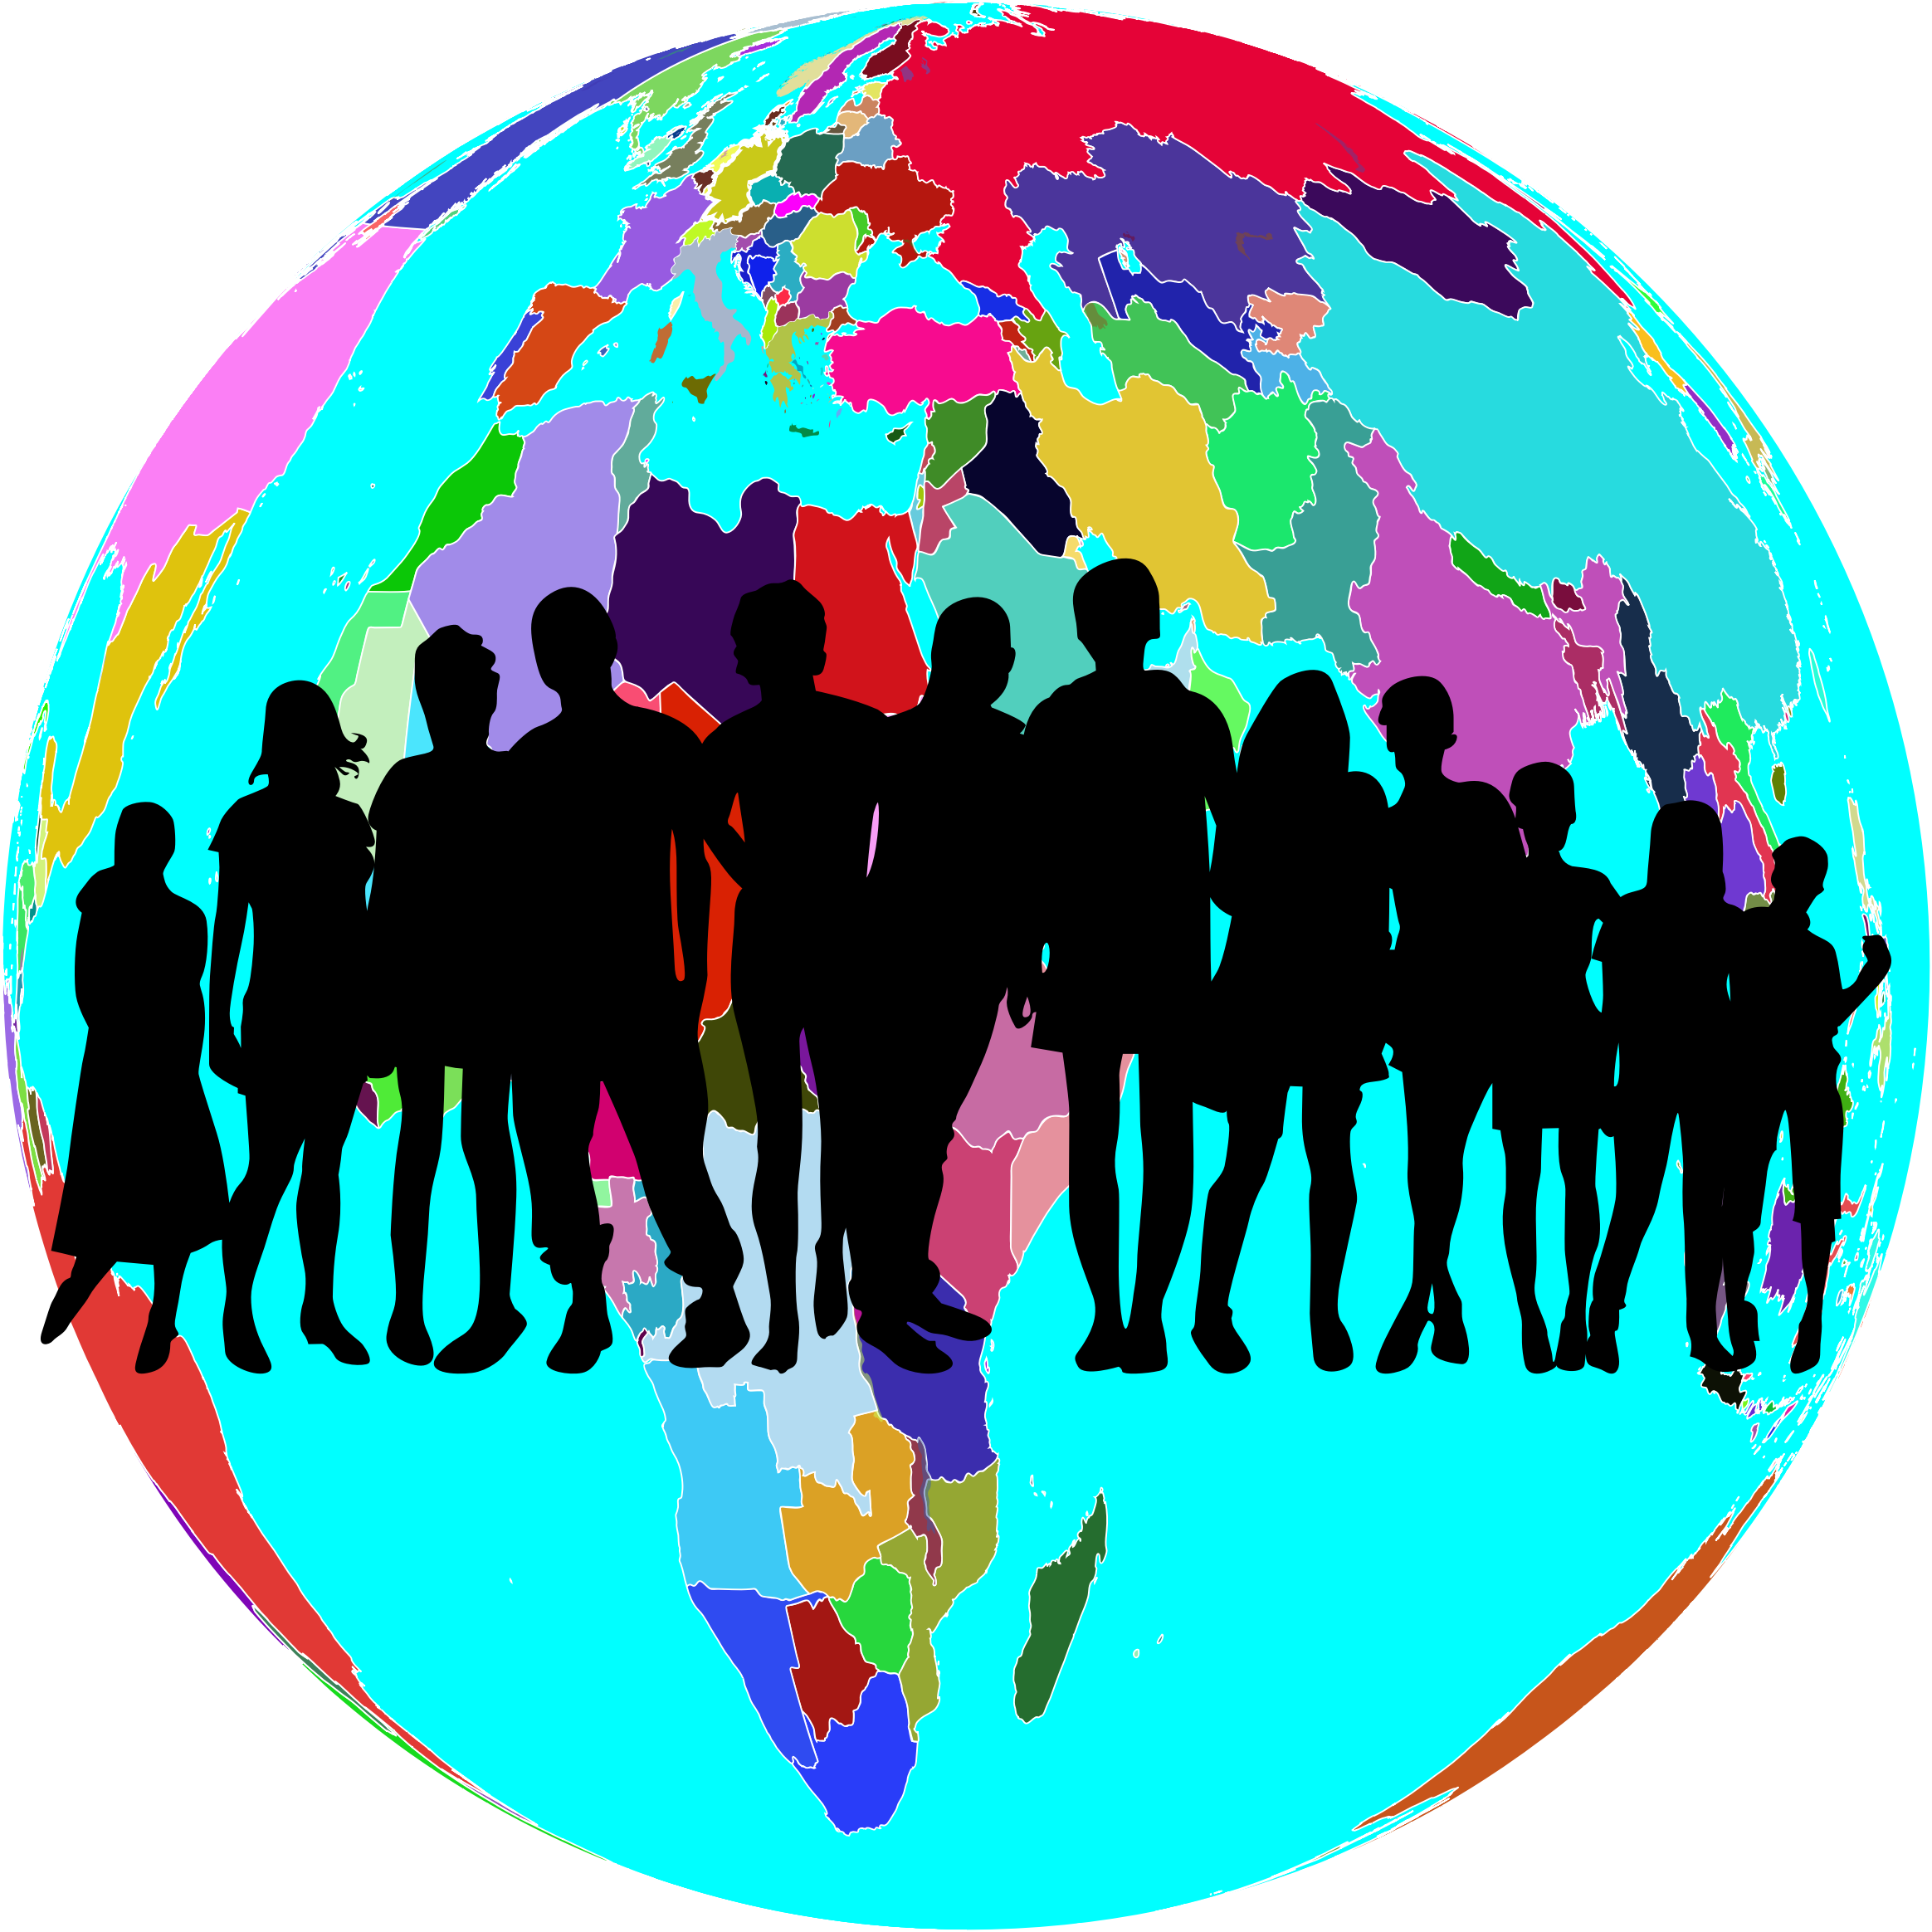 Family book clipart picture transparent Clipart - Colorful World Globe Human Family picture transparent